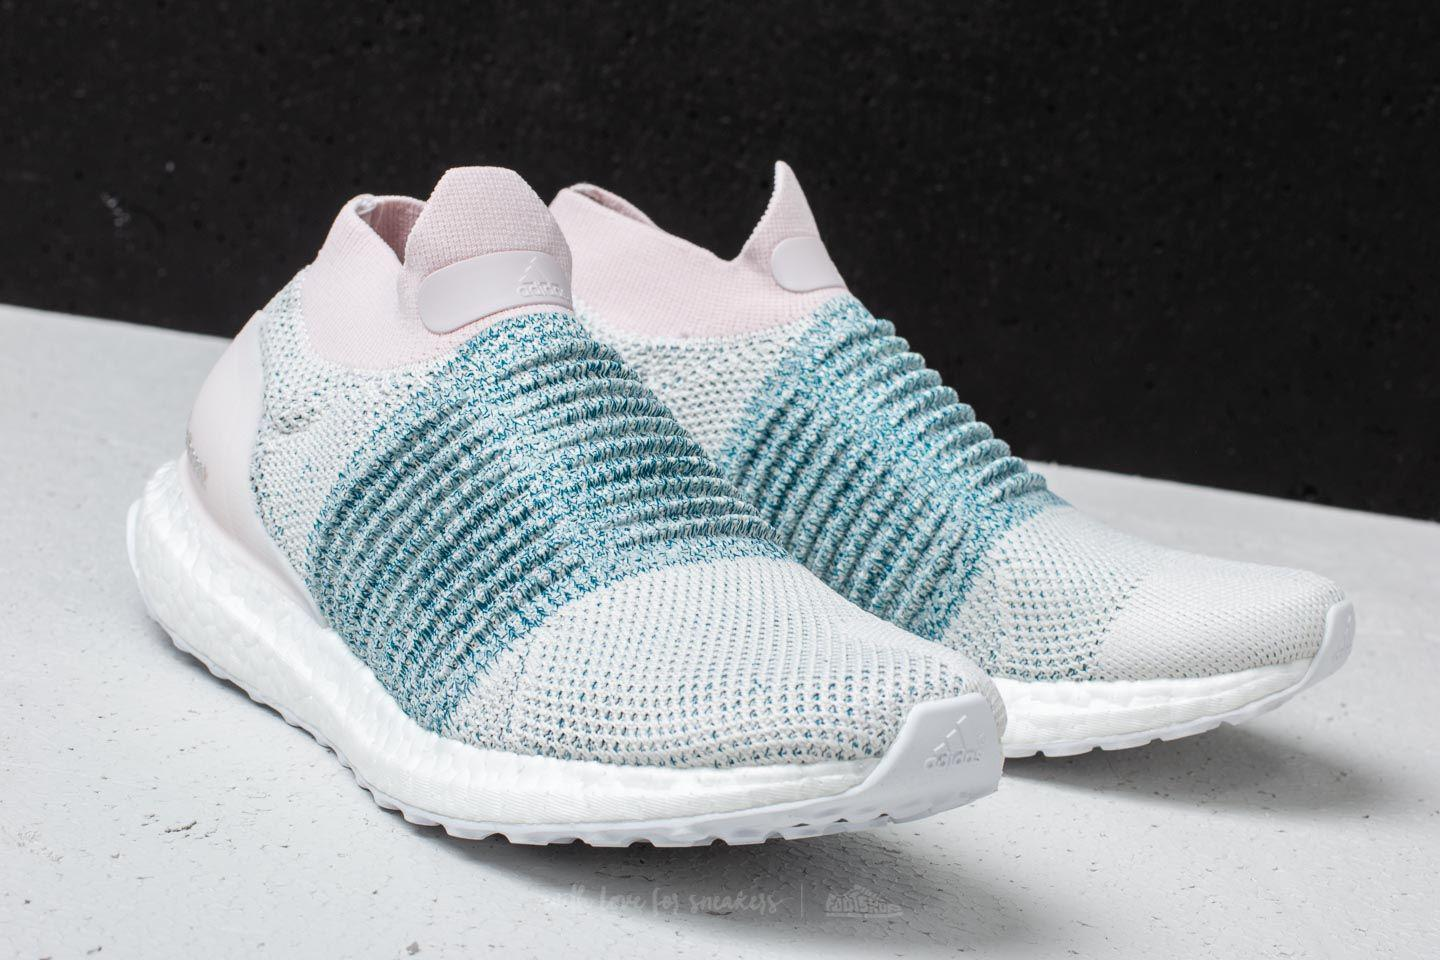 54376e217 Lyst - Footshop Adidas Ultraboost Laceless W Orchid Tint  Ftwr White ...